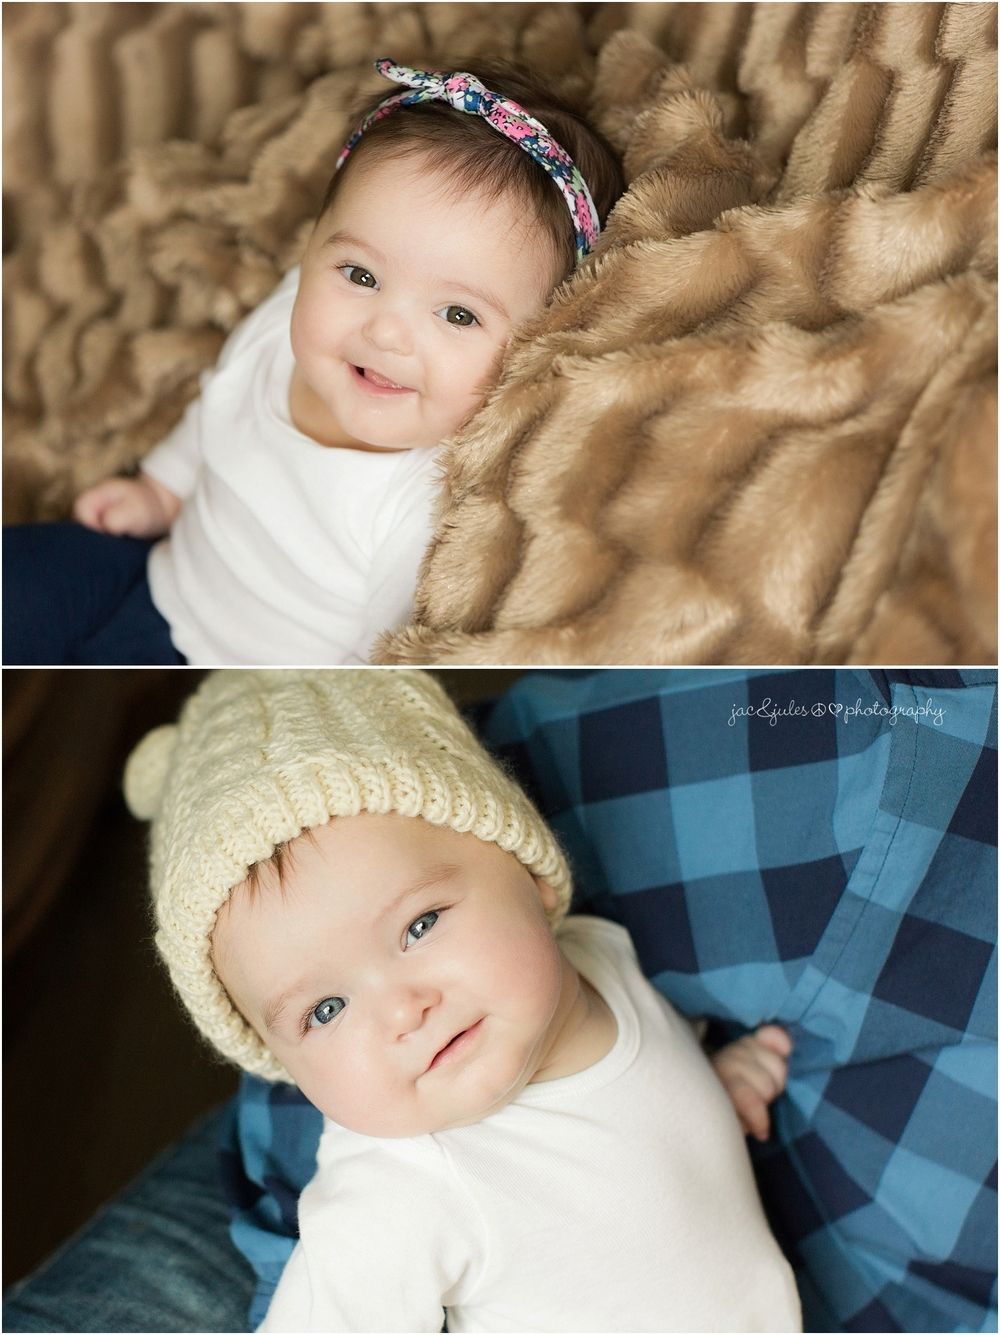 jacnjules photographs twin babies in toms river, nj